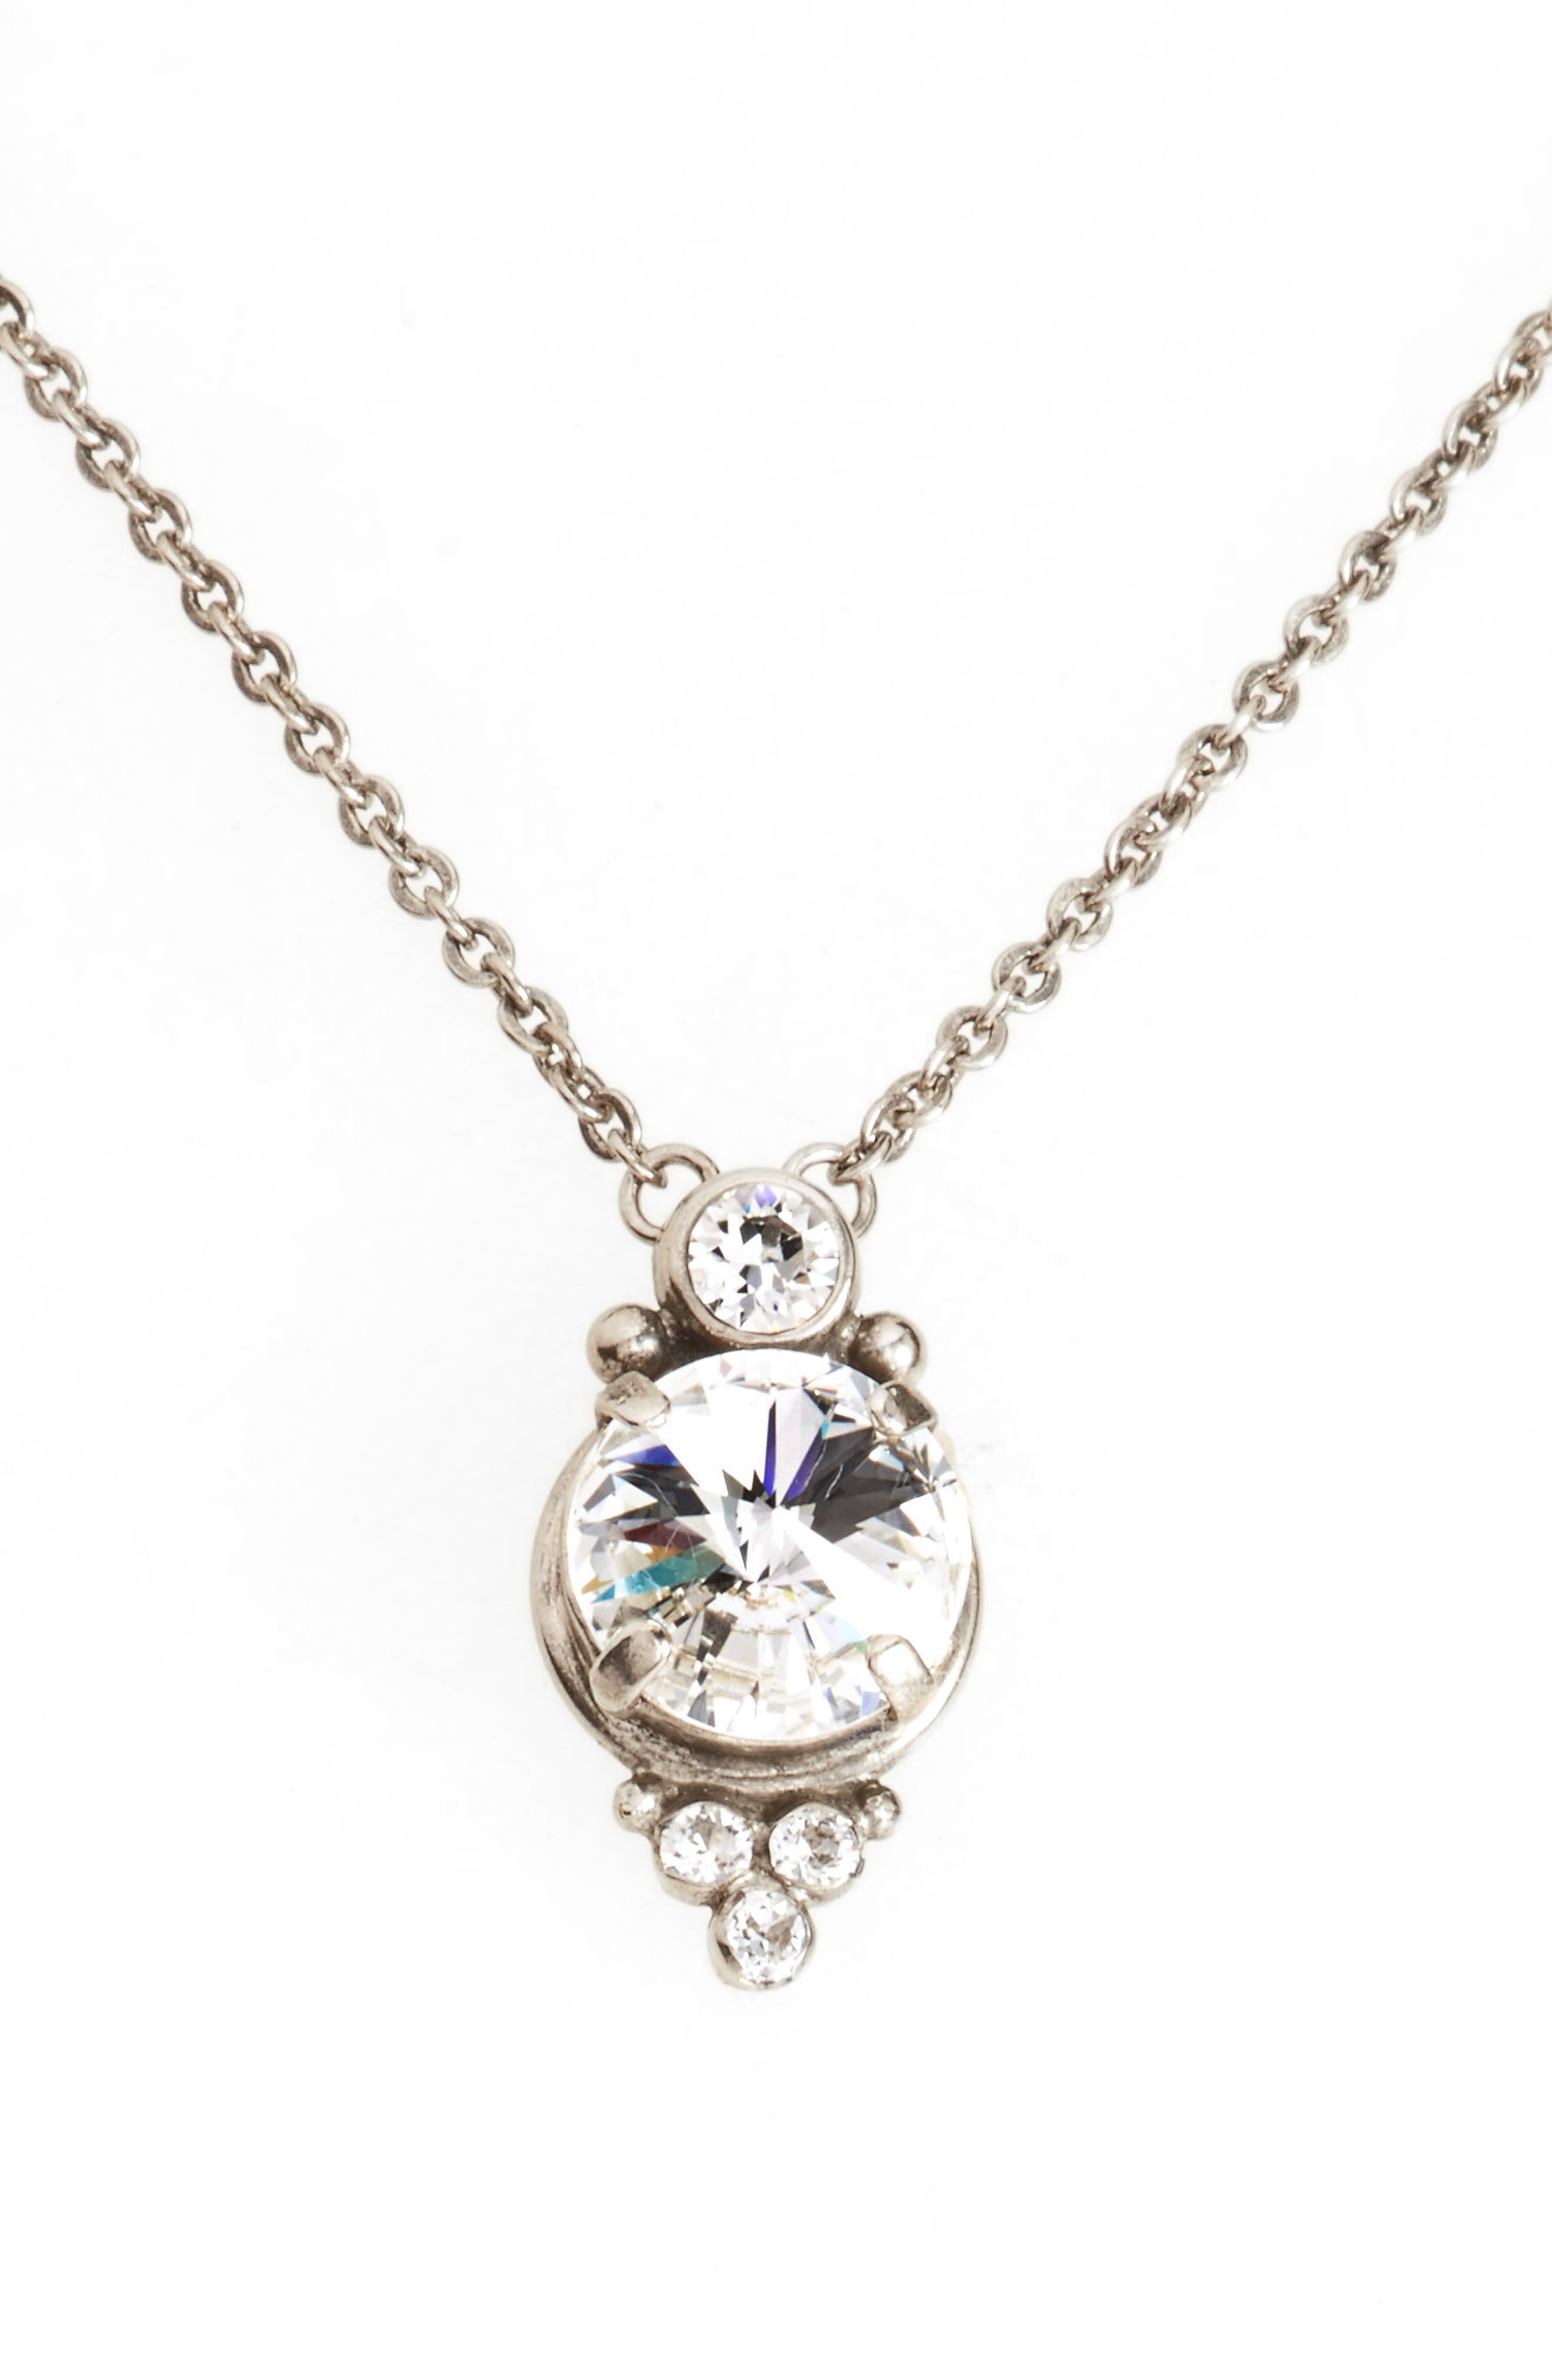 Radiant Crystal Pendant Necklace,                             Main thumbnail 1, color,                             CLEAR